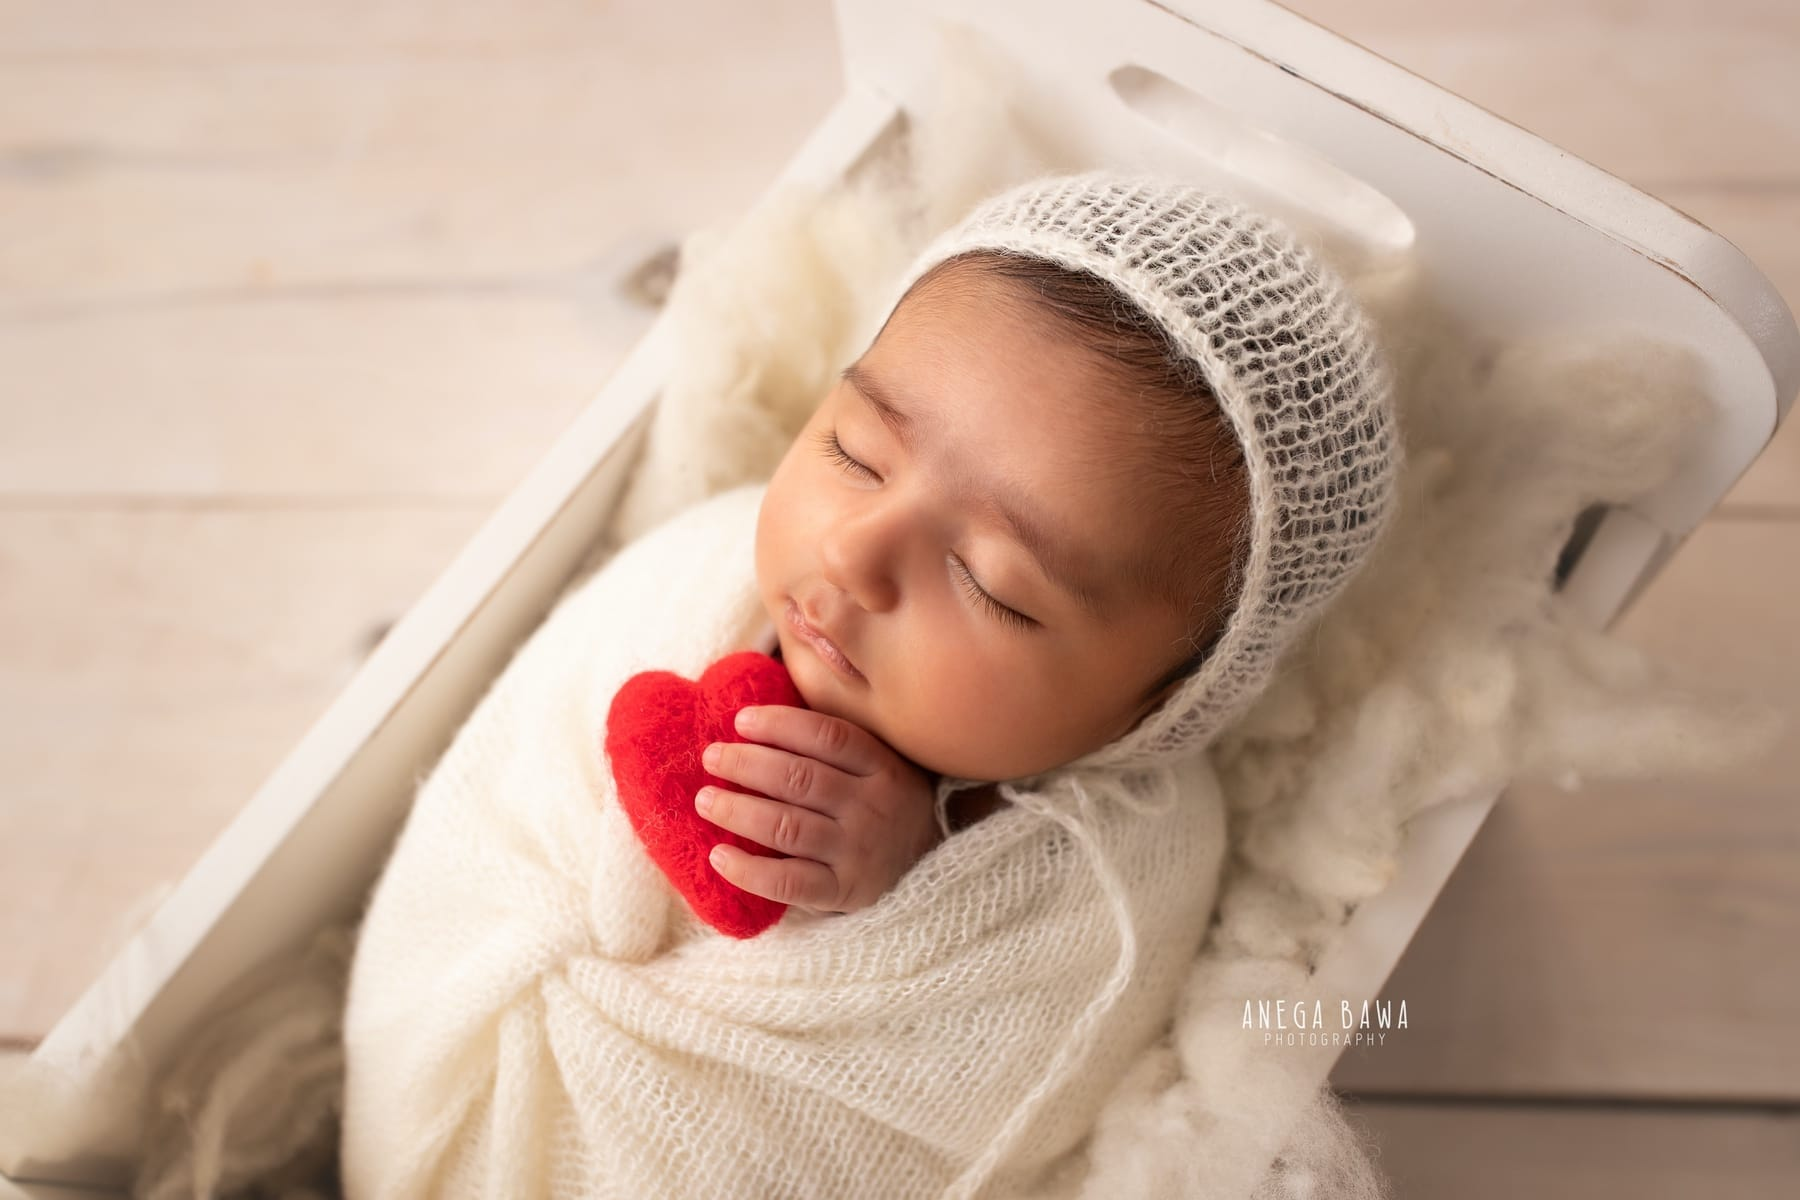 light wooden white newborn photography delhi 20 days baby boy photoshoot gurgaon anega bawa